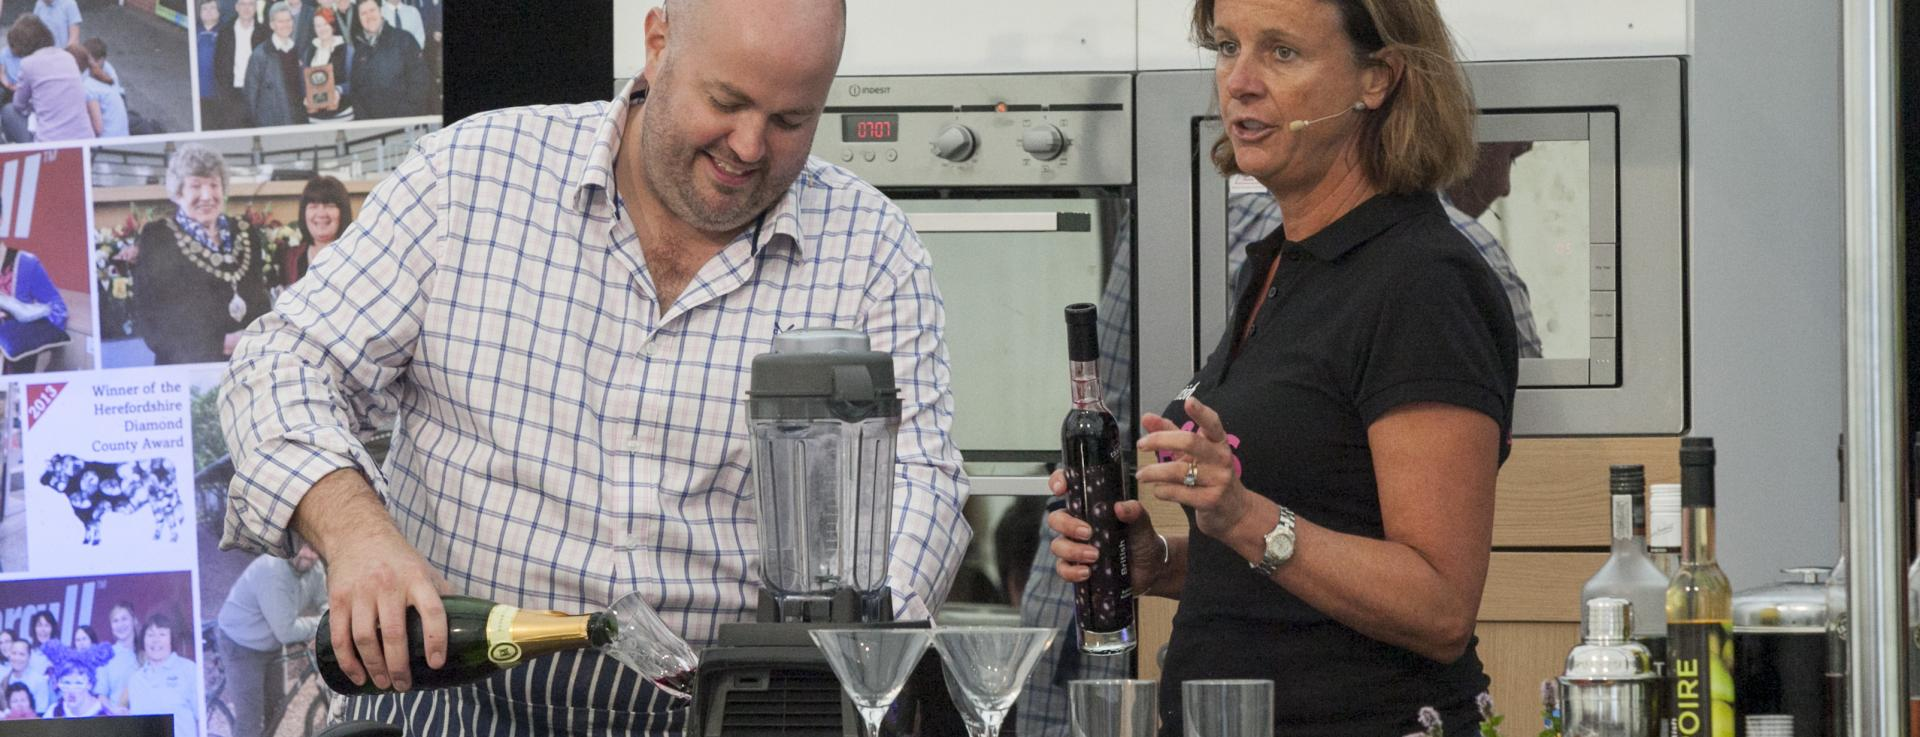 Flavours of Herefordshire food festival